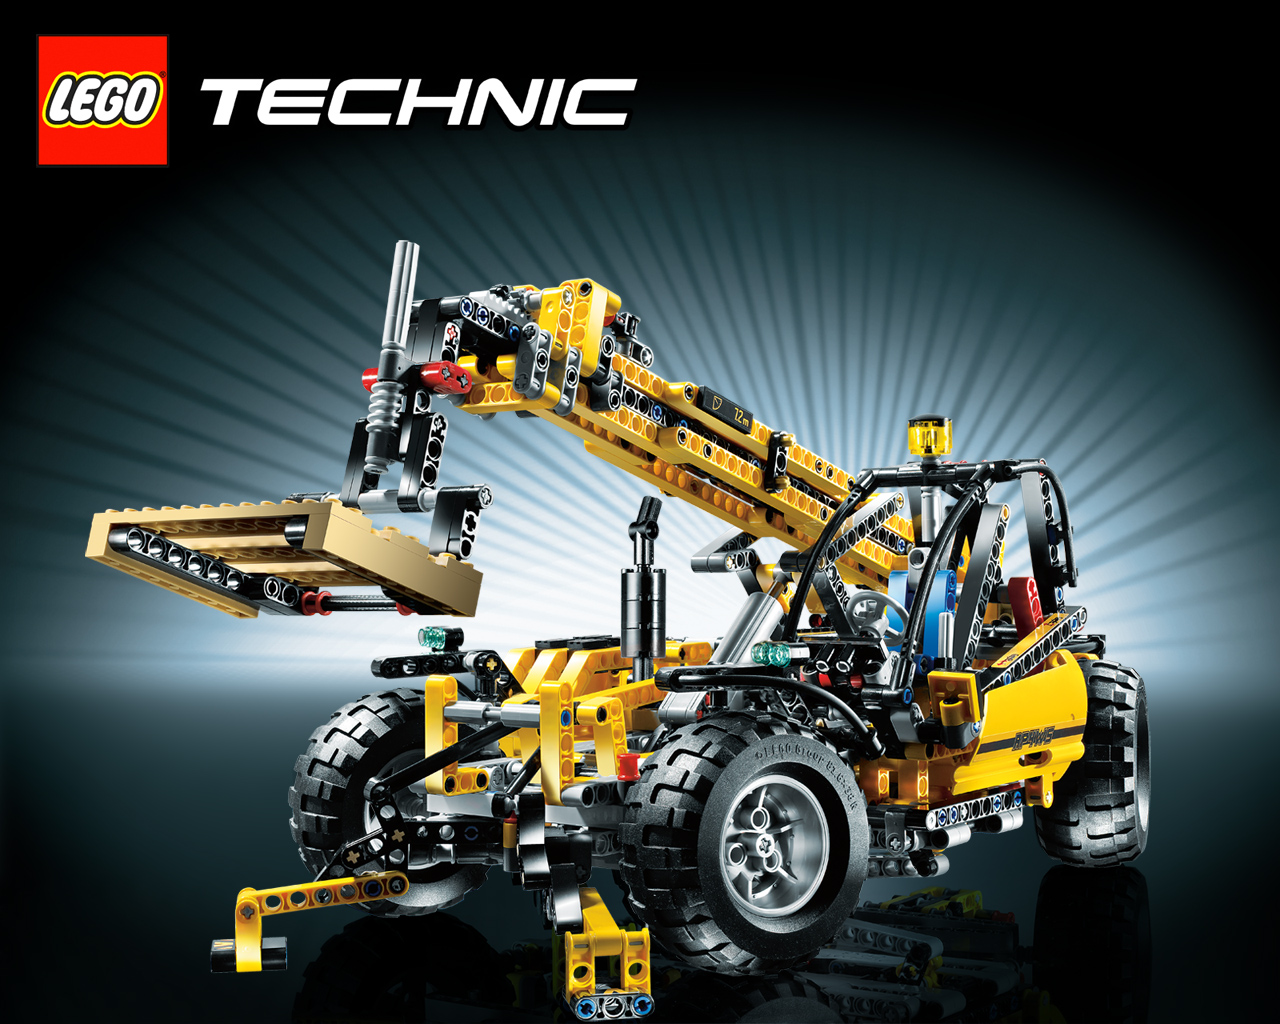 lego technic wallpaper wallpapersafari. Black Bedroom Furniture Sets. Home Design Ideas